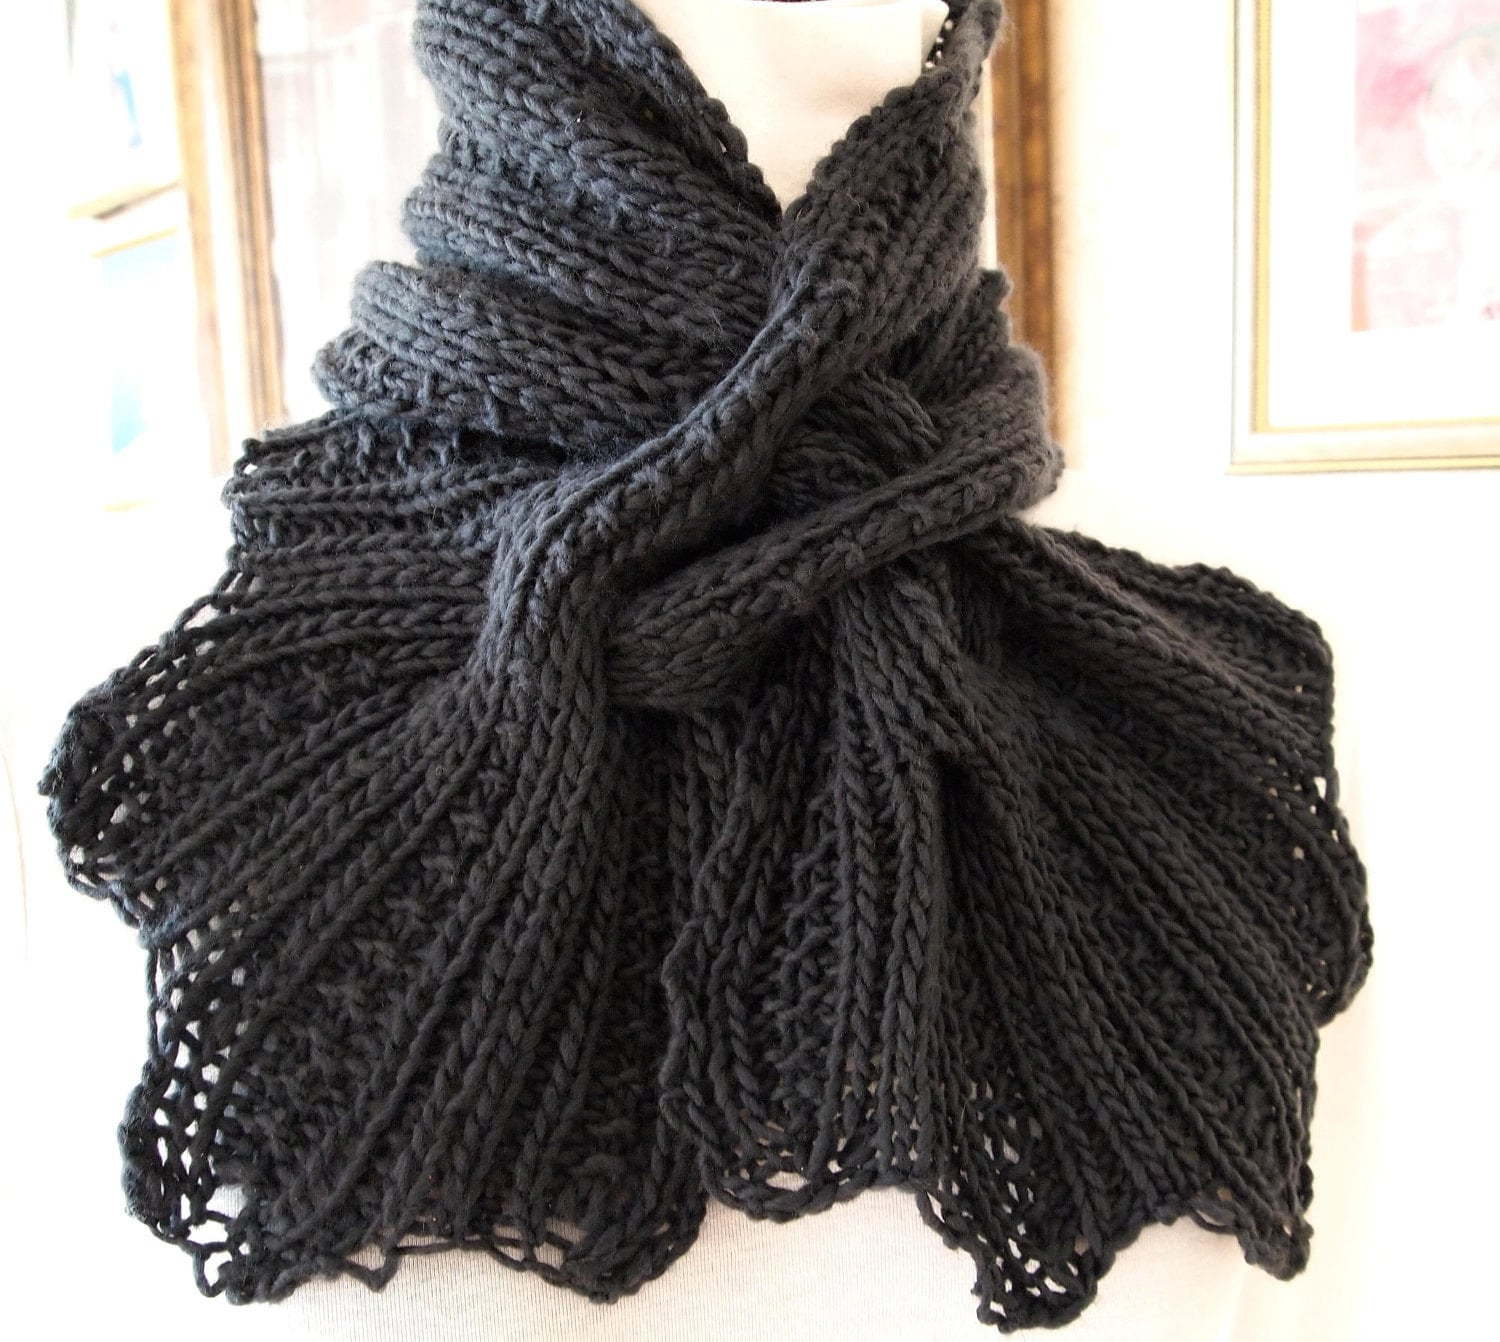 Free Patterns For Knitted Scarves : HAND KNIT SCARF PATTERNS   Free Patterns